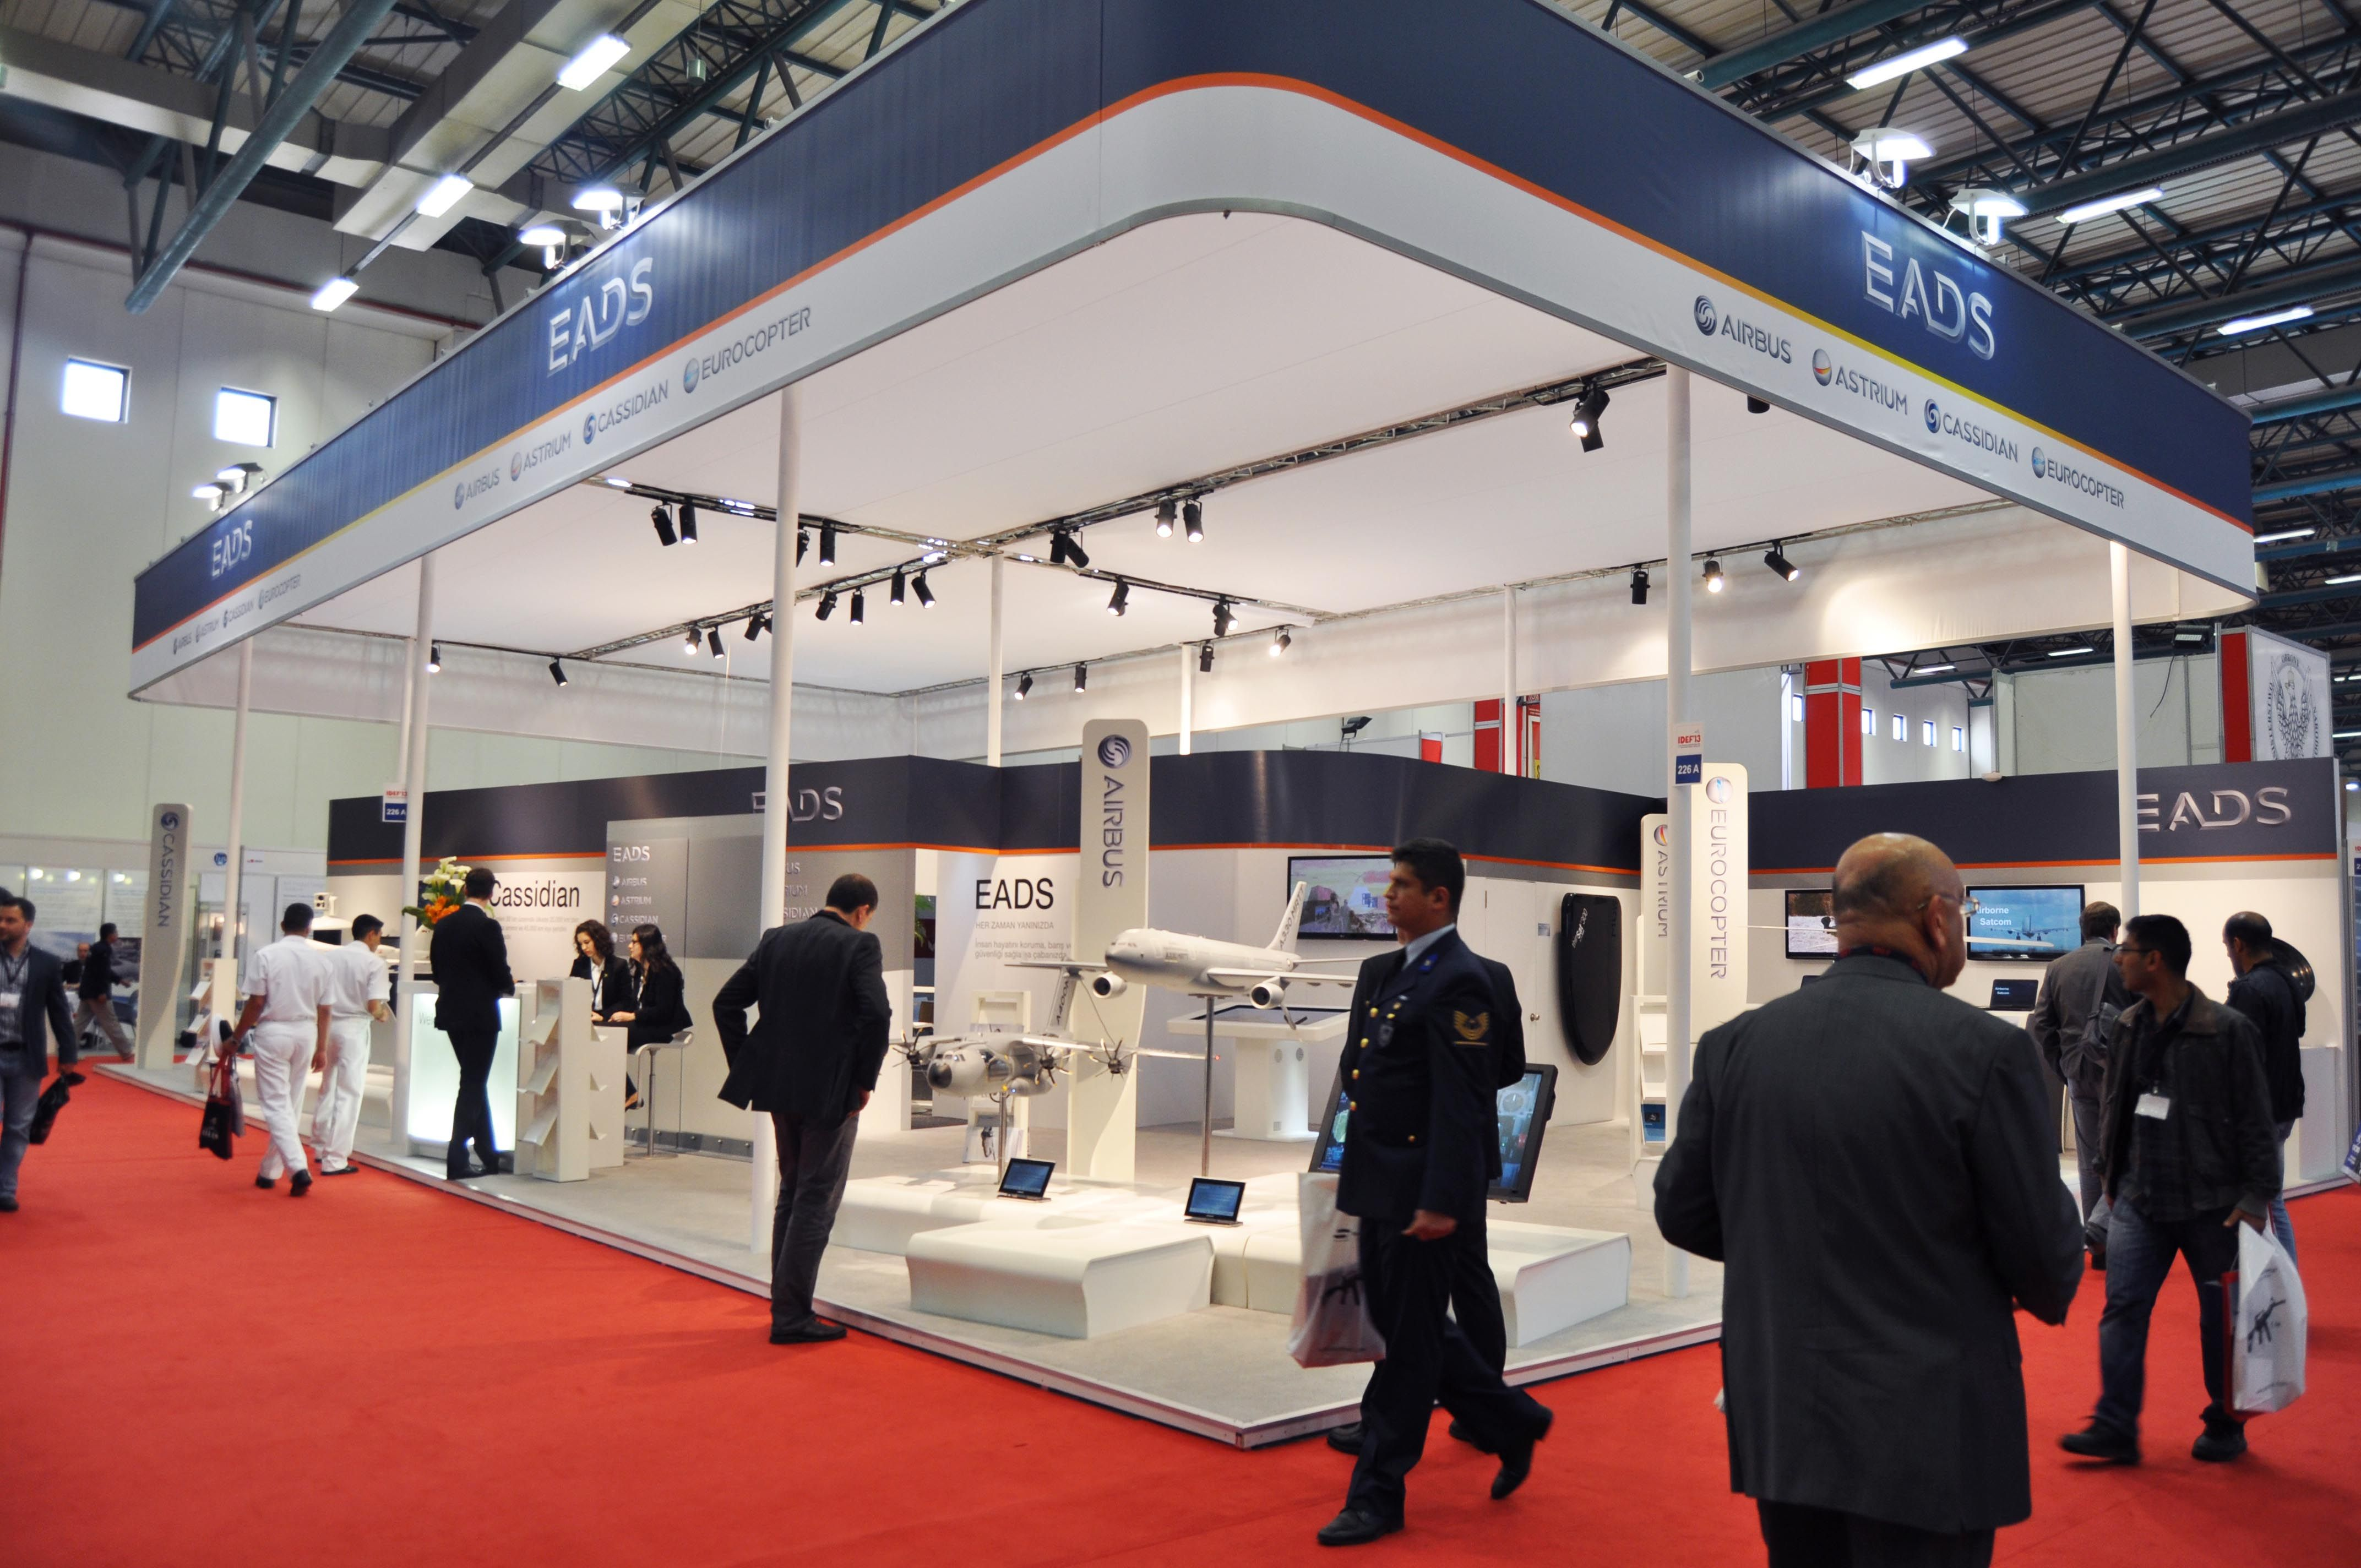 Expo Exhibition Stands Election : Point expo exhibition congress and events services ltd